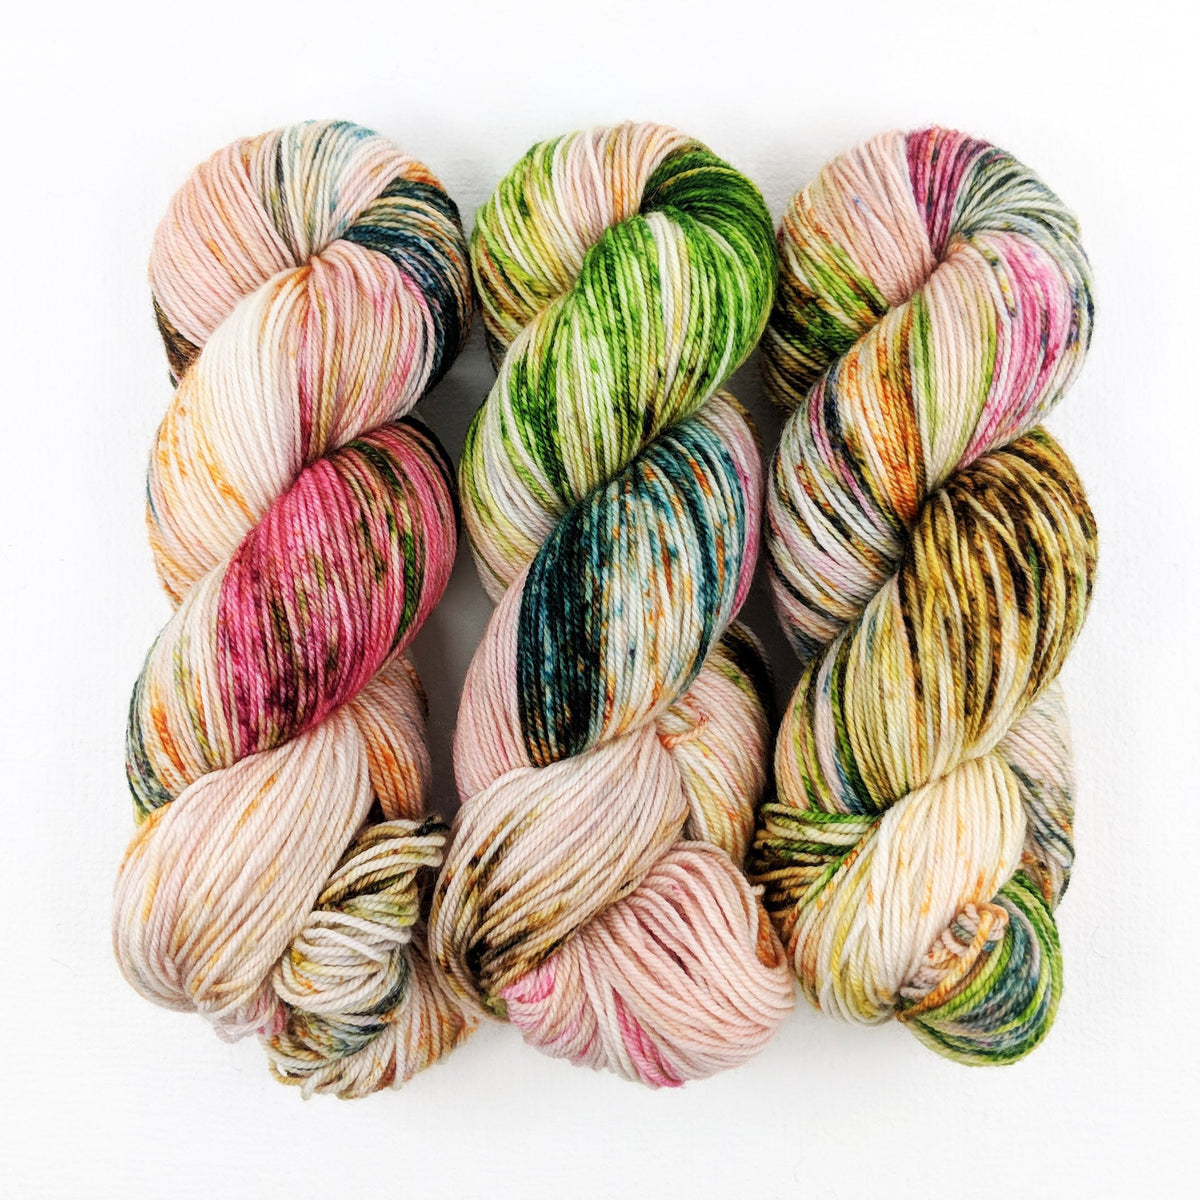 Flowers in the Fields - Bunny Hug Sport - Dyed Stock